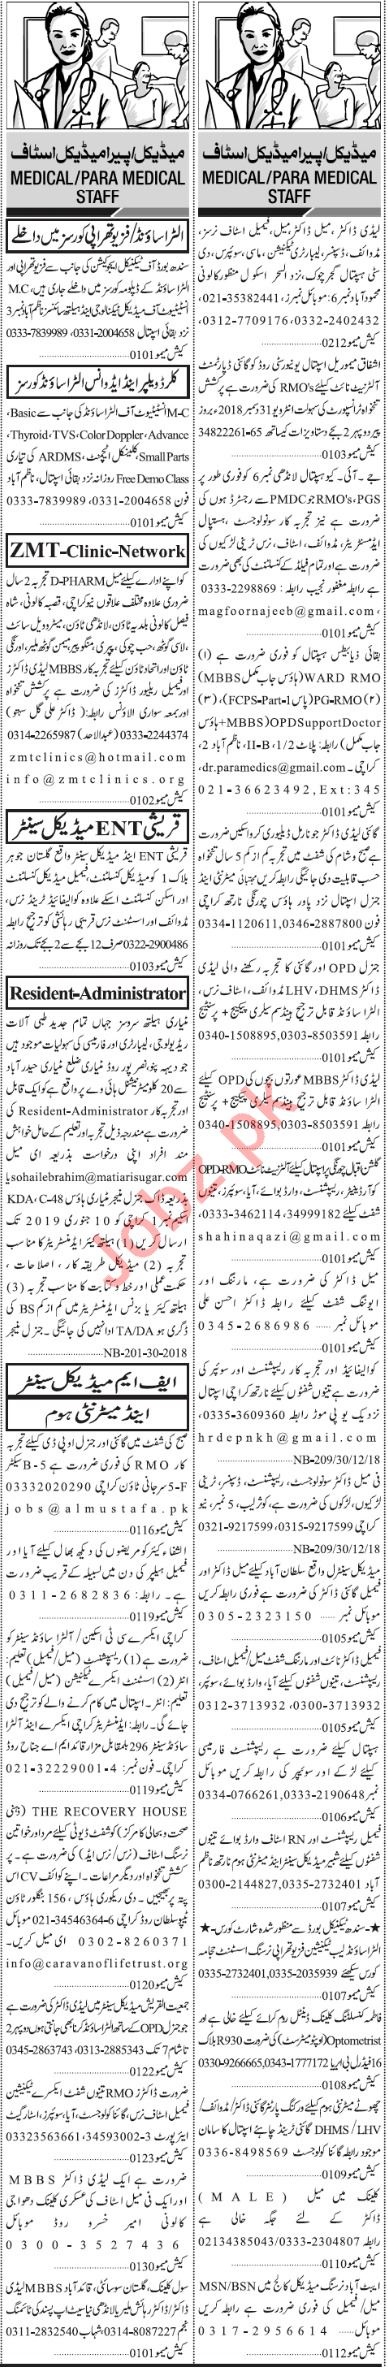 Jang Sunday Classified Ads 30th Dec 2018 Paramedical Staff